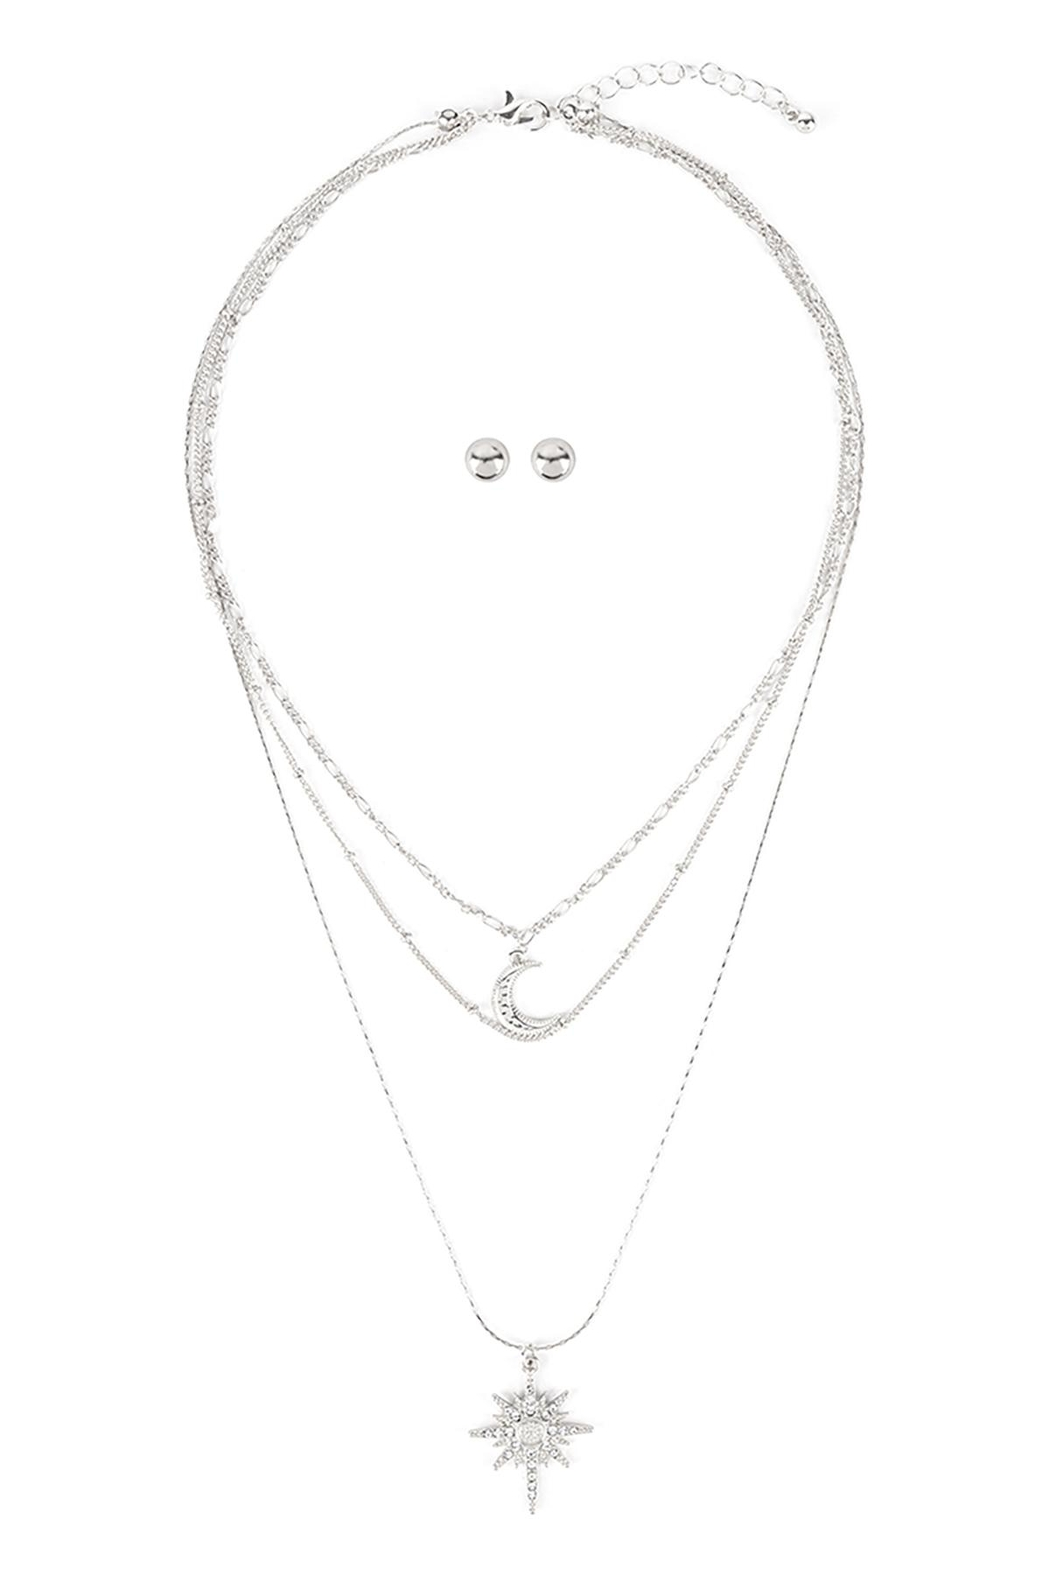 Riah Fashion Starburst-Layered-Pave-Crystal-Necklace-And-Earring-Set - Front Cropped Image